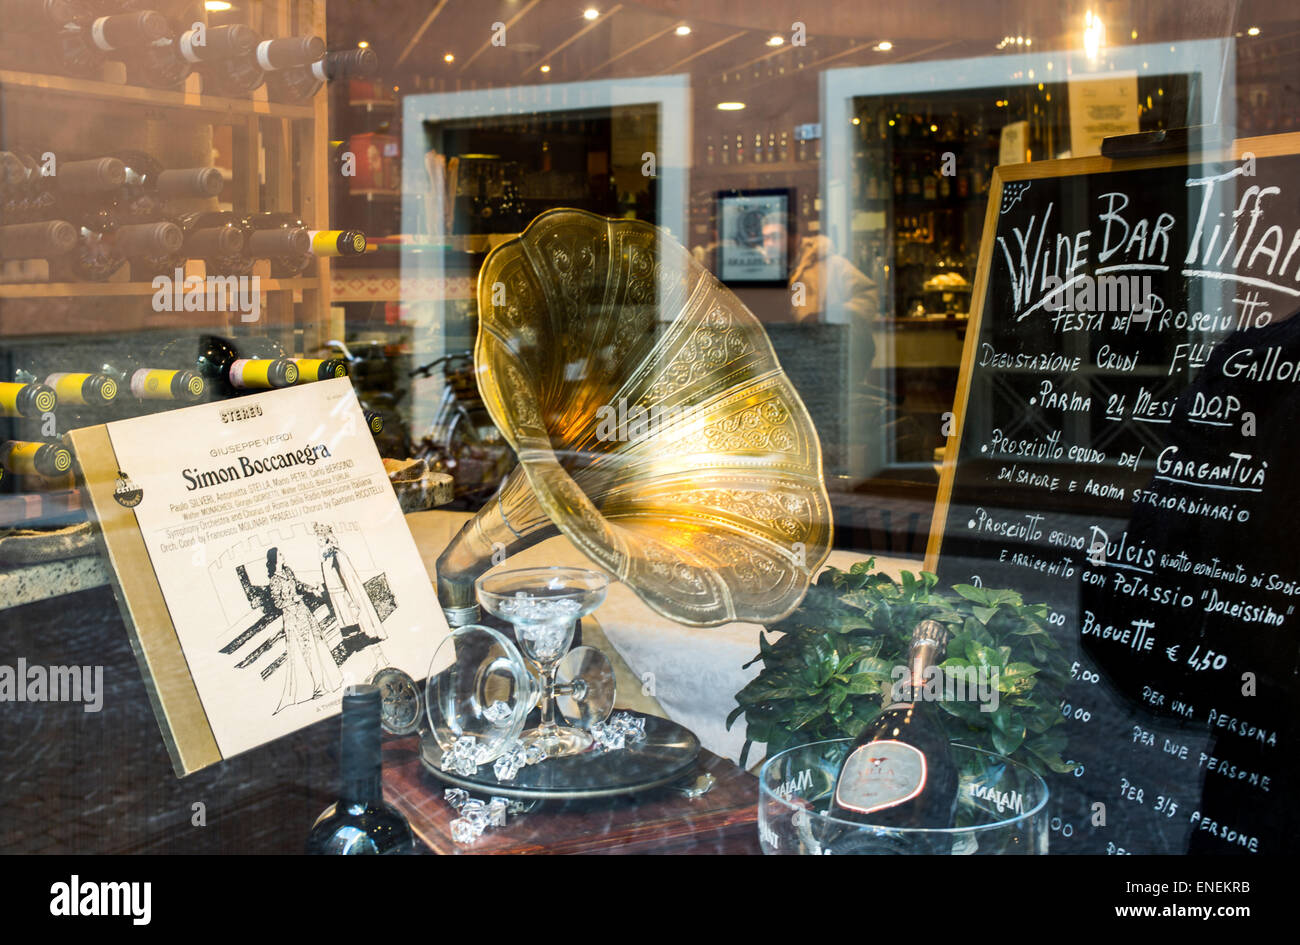 Parma, alcohol and opera music in a wine bar window - Stock Image